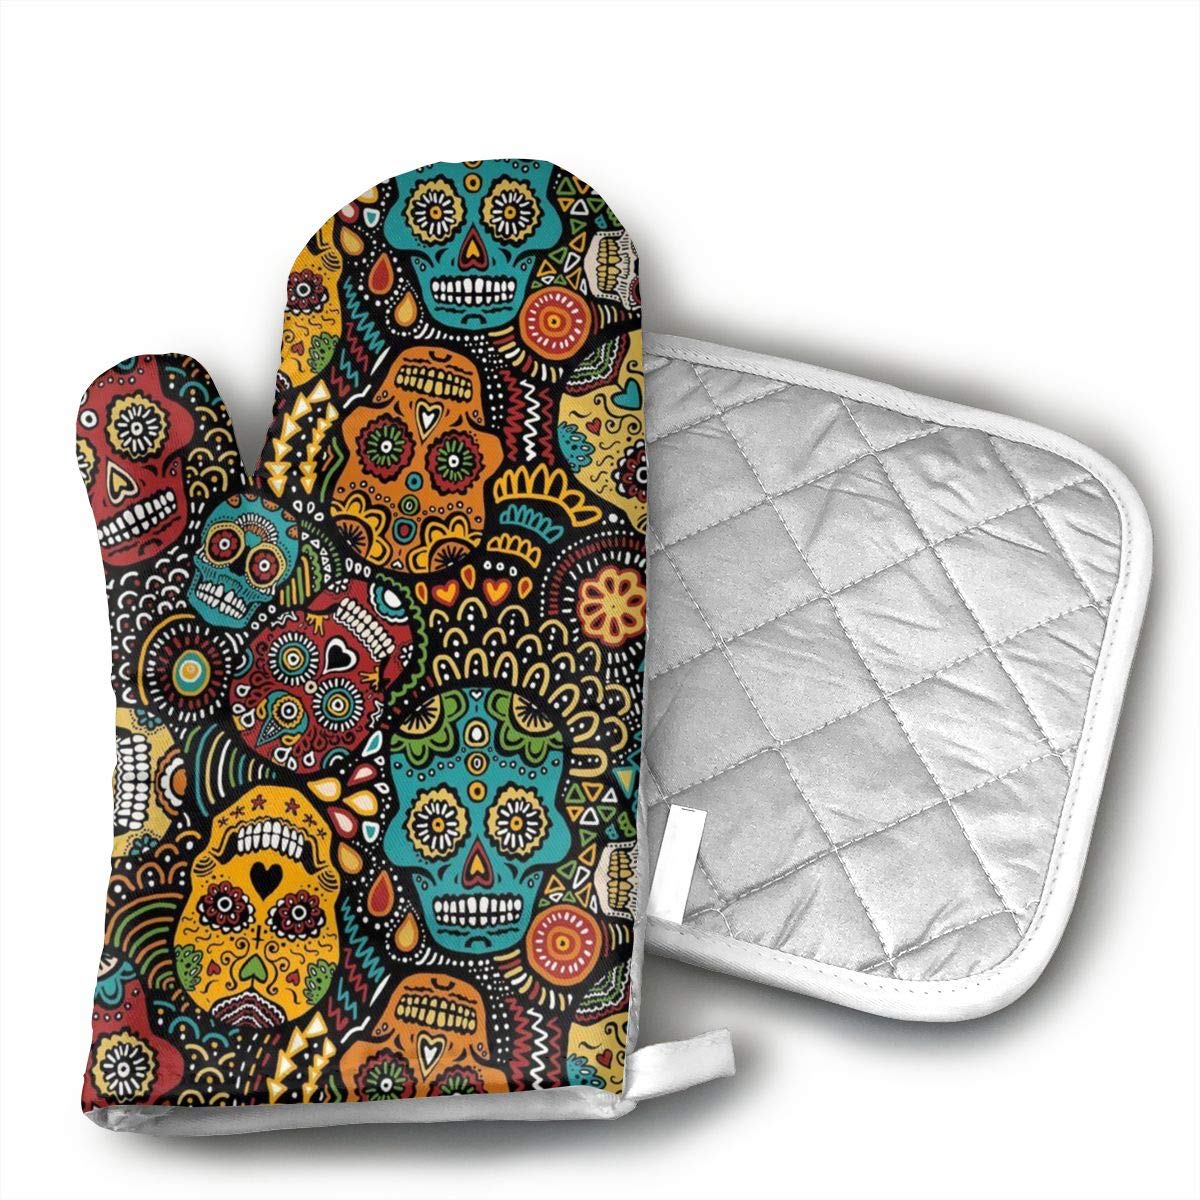 Mexican Sugar Skulls Oven Mitts Heat Resistant Kitchen Gloves and Potholders BBQ Gloves-Cotton Pot Holders Non Slip Oven Gloves for Kitchen